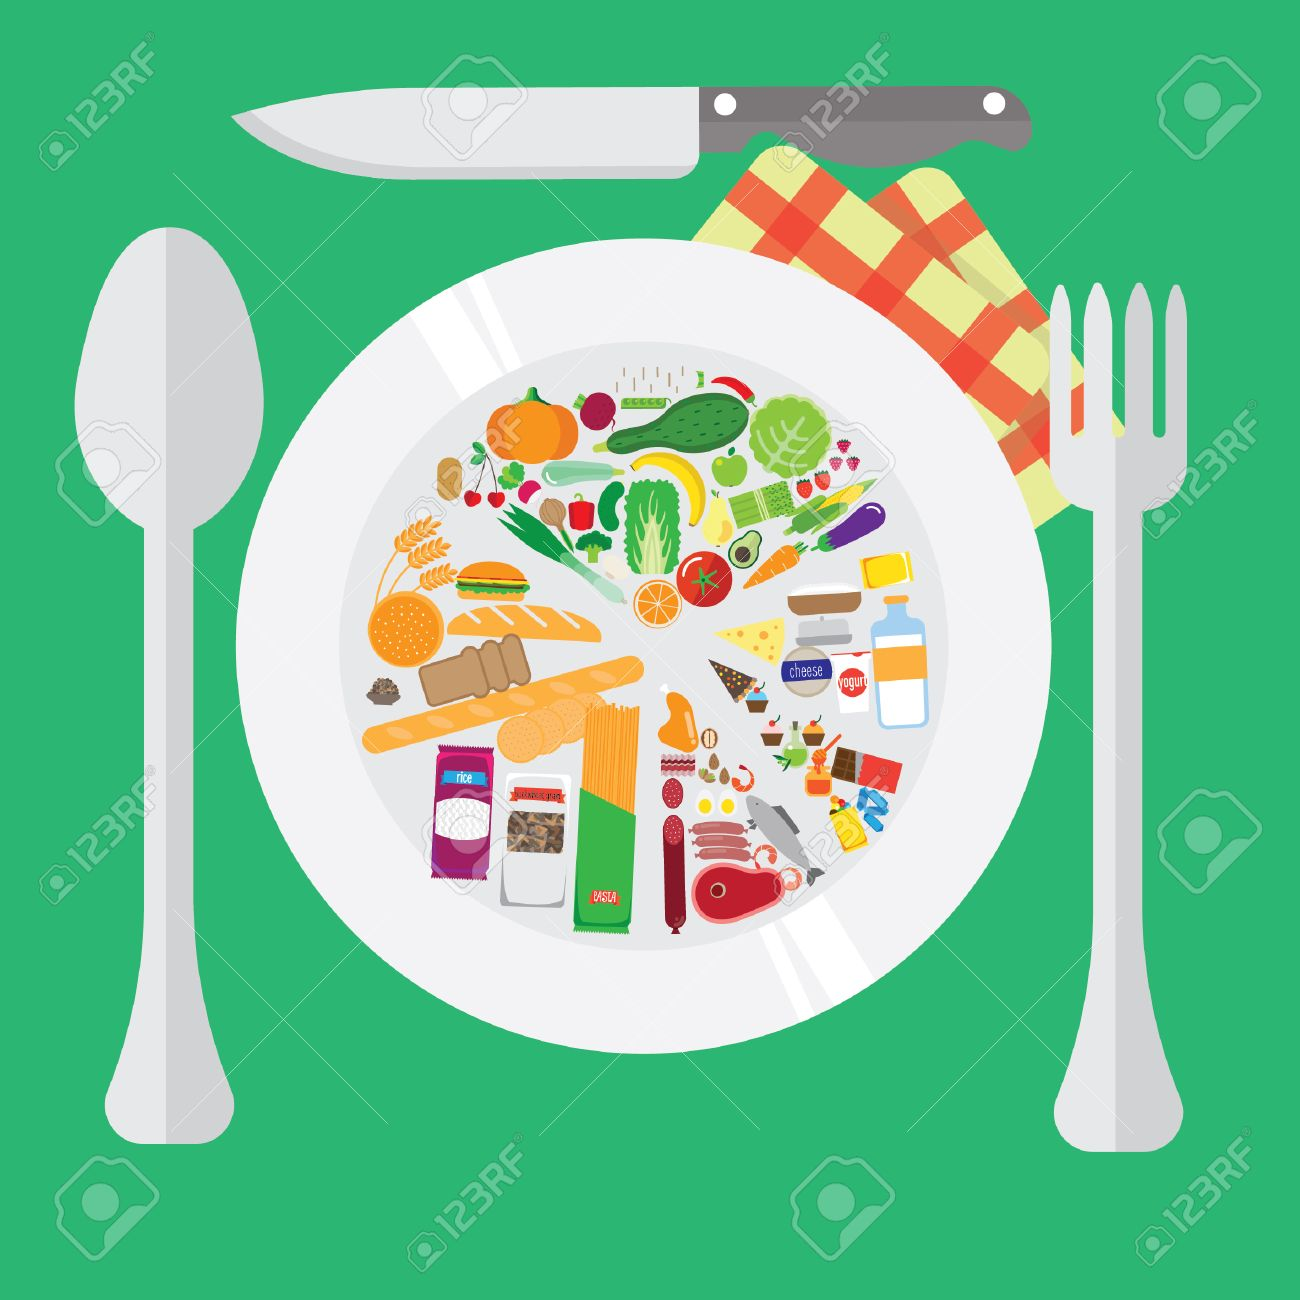 healthy food  chart on the plate  home cooking